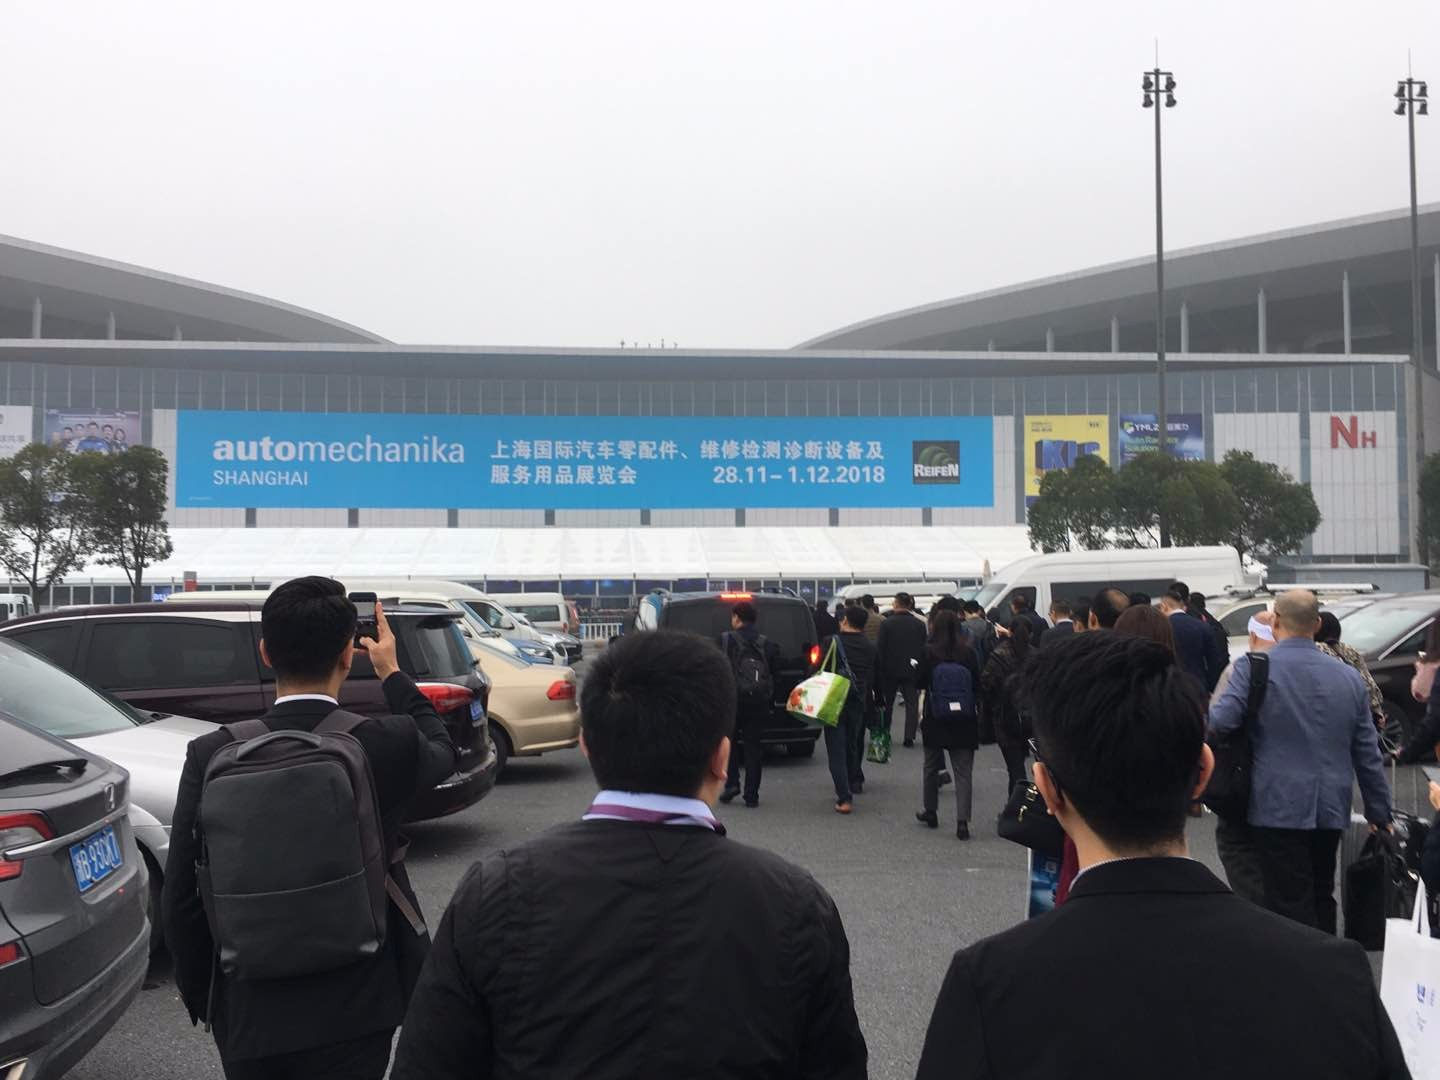 2018 Automechanika in Shanghai